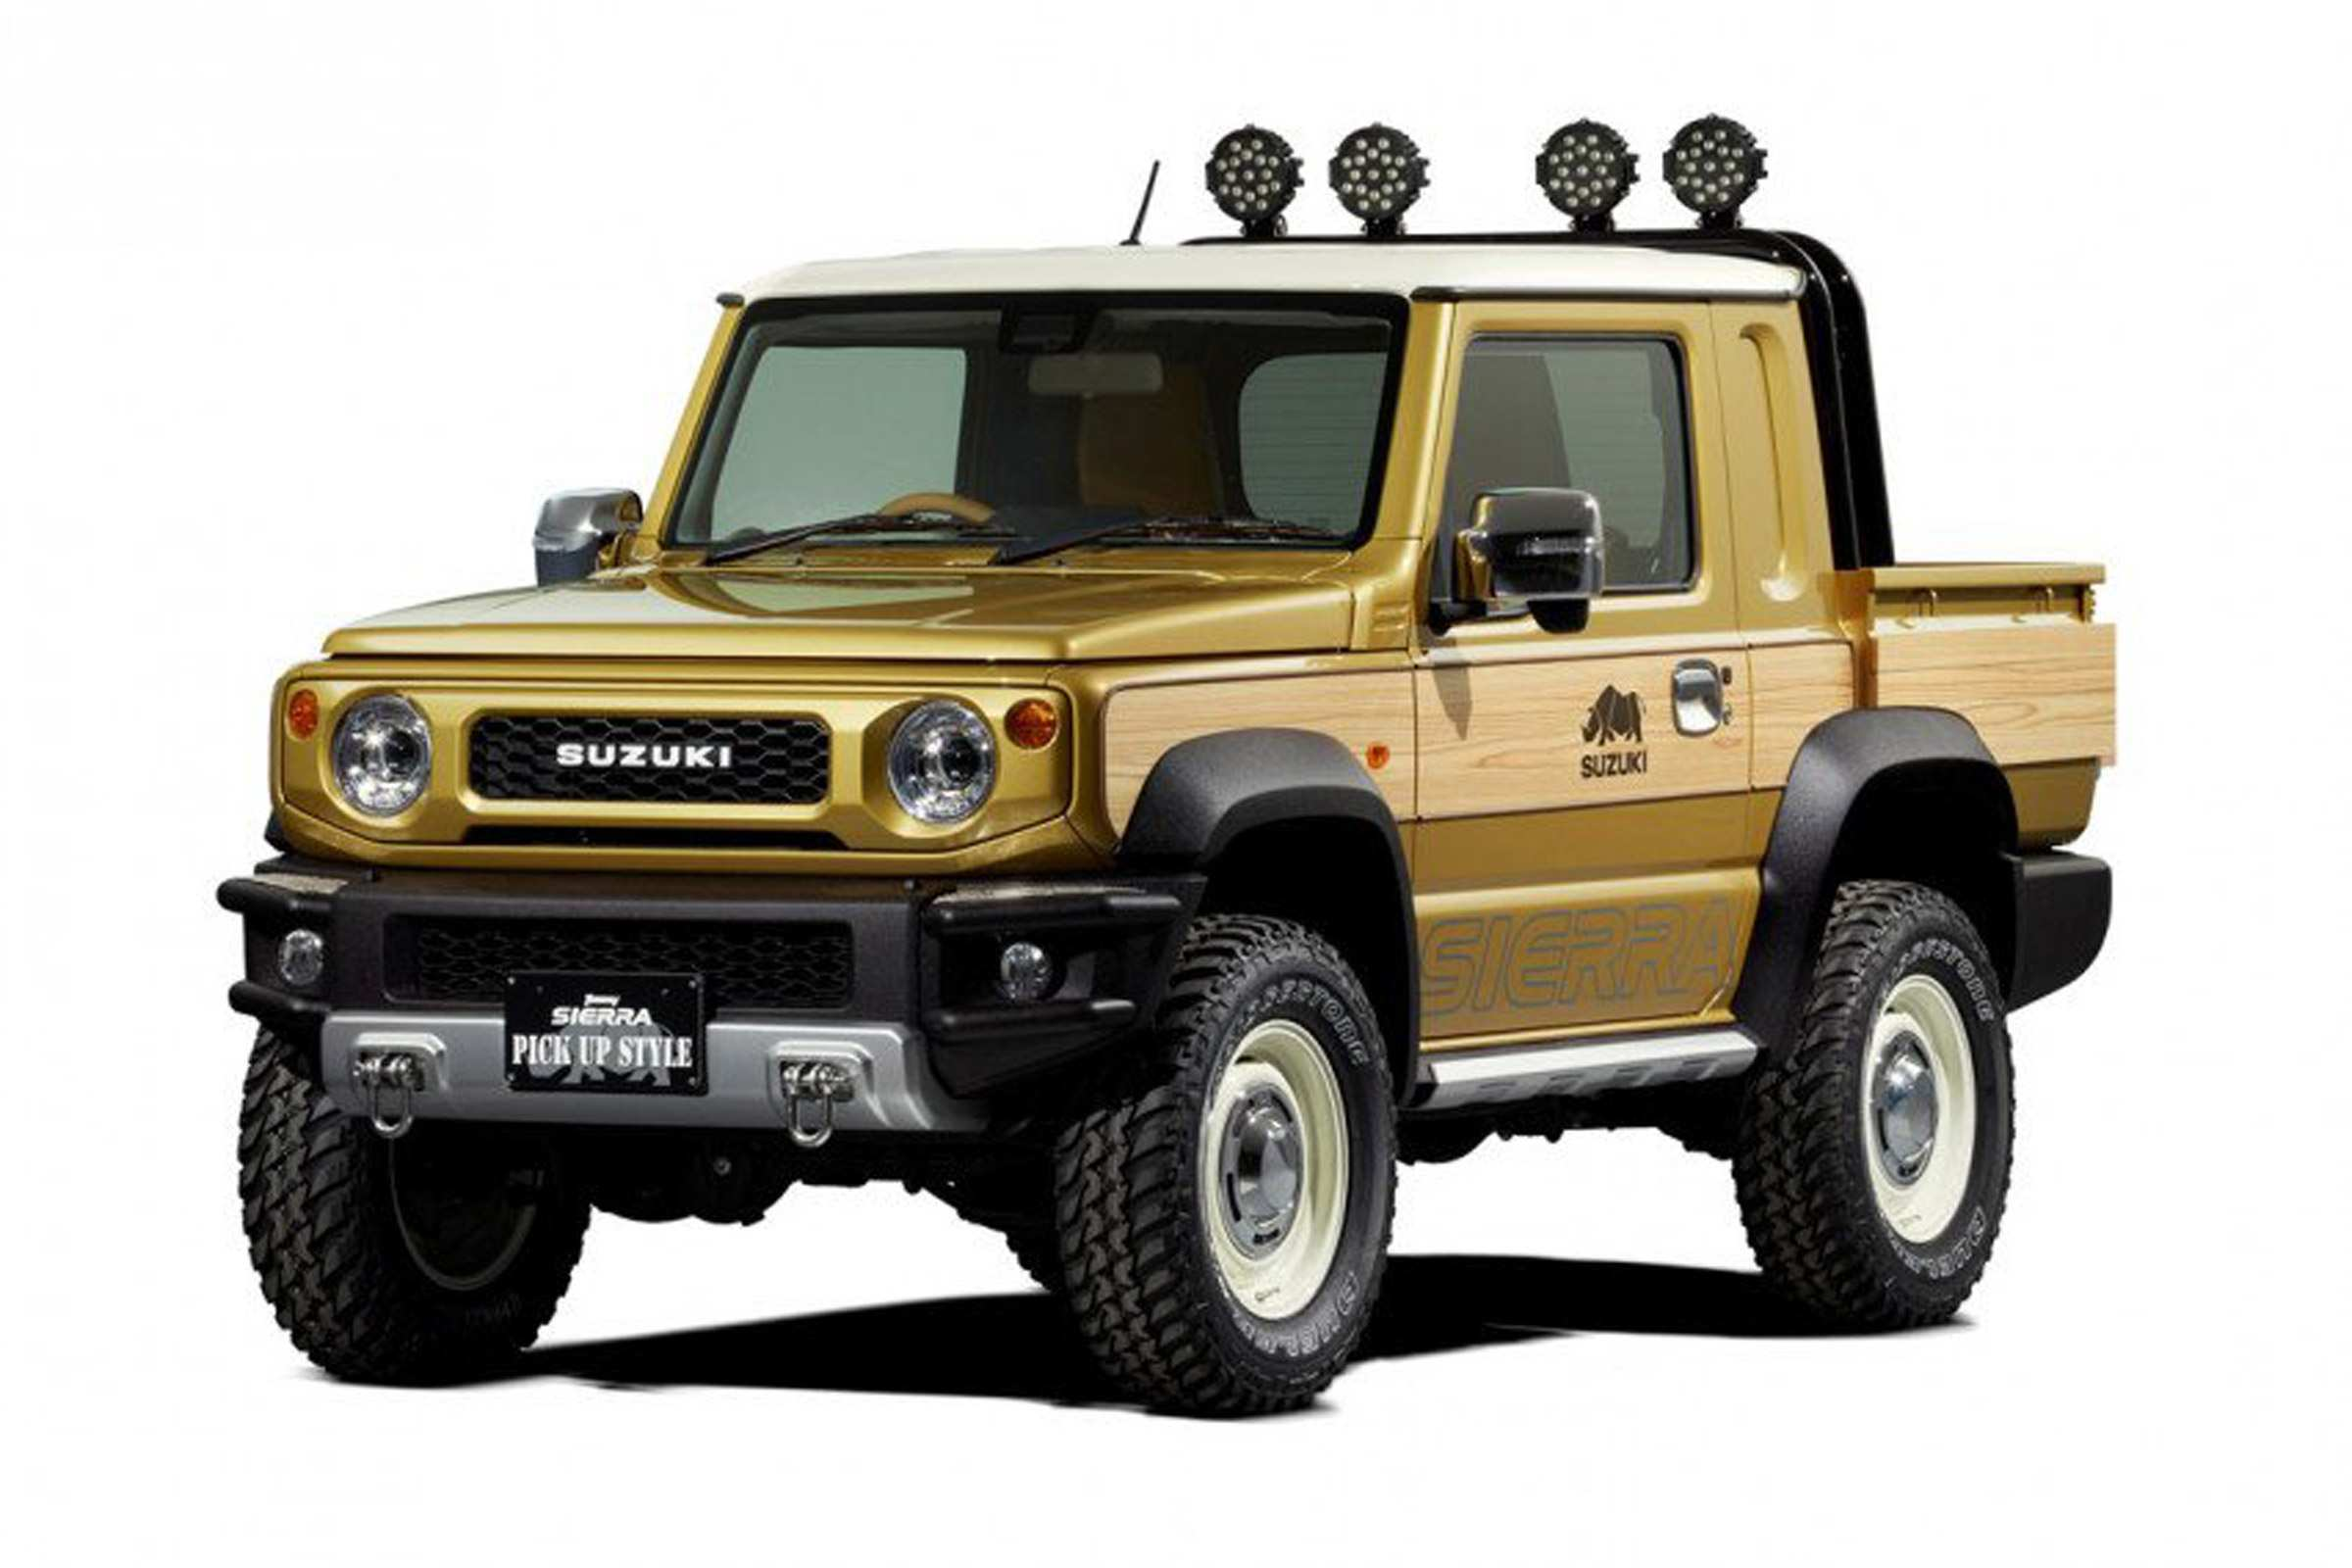 61 New 2020 Suzuki Jimny Model Overview